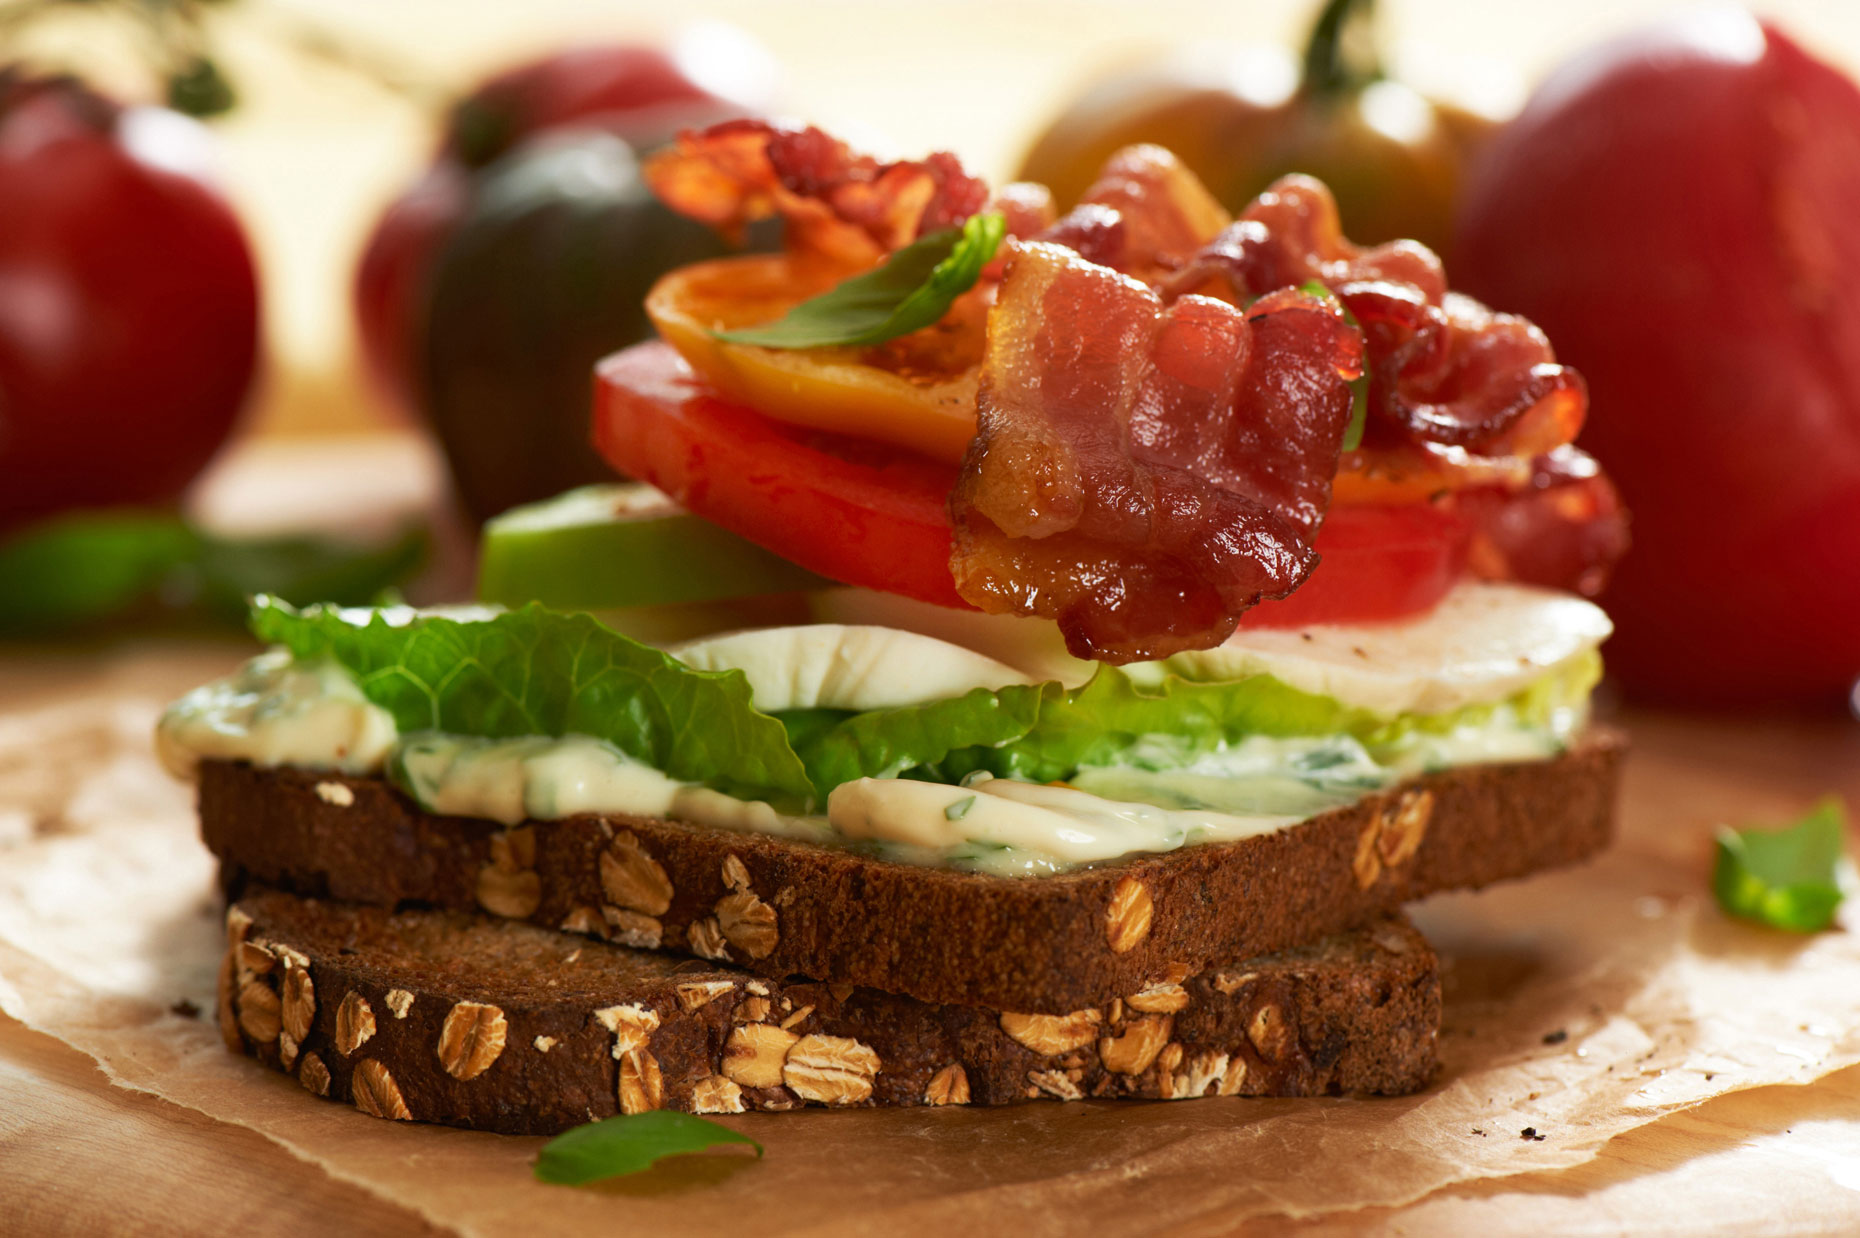 44-HellmannsTripple_Tomato_Cheese_Sandwich_Bacon_close_0064